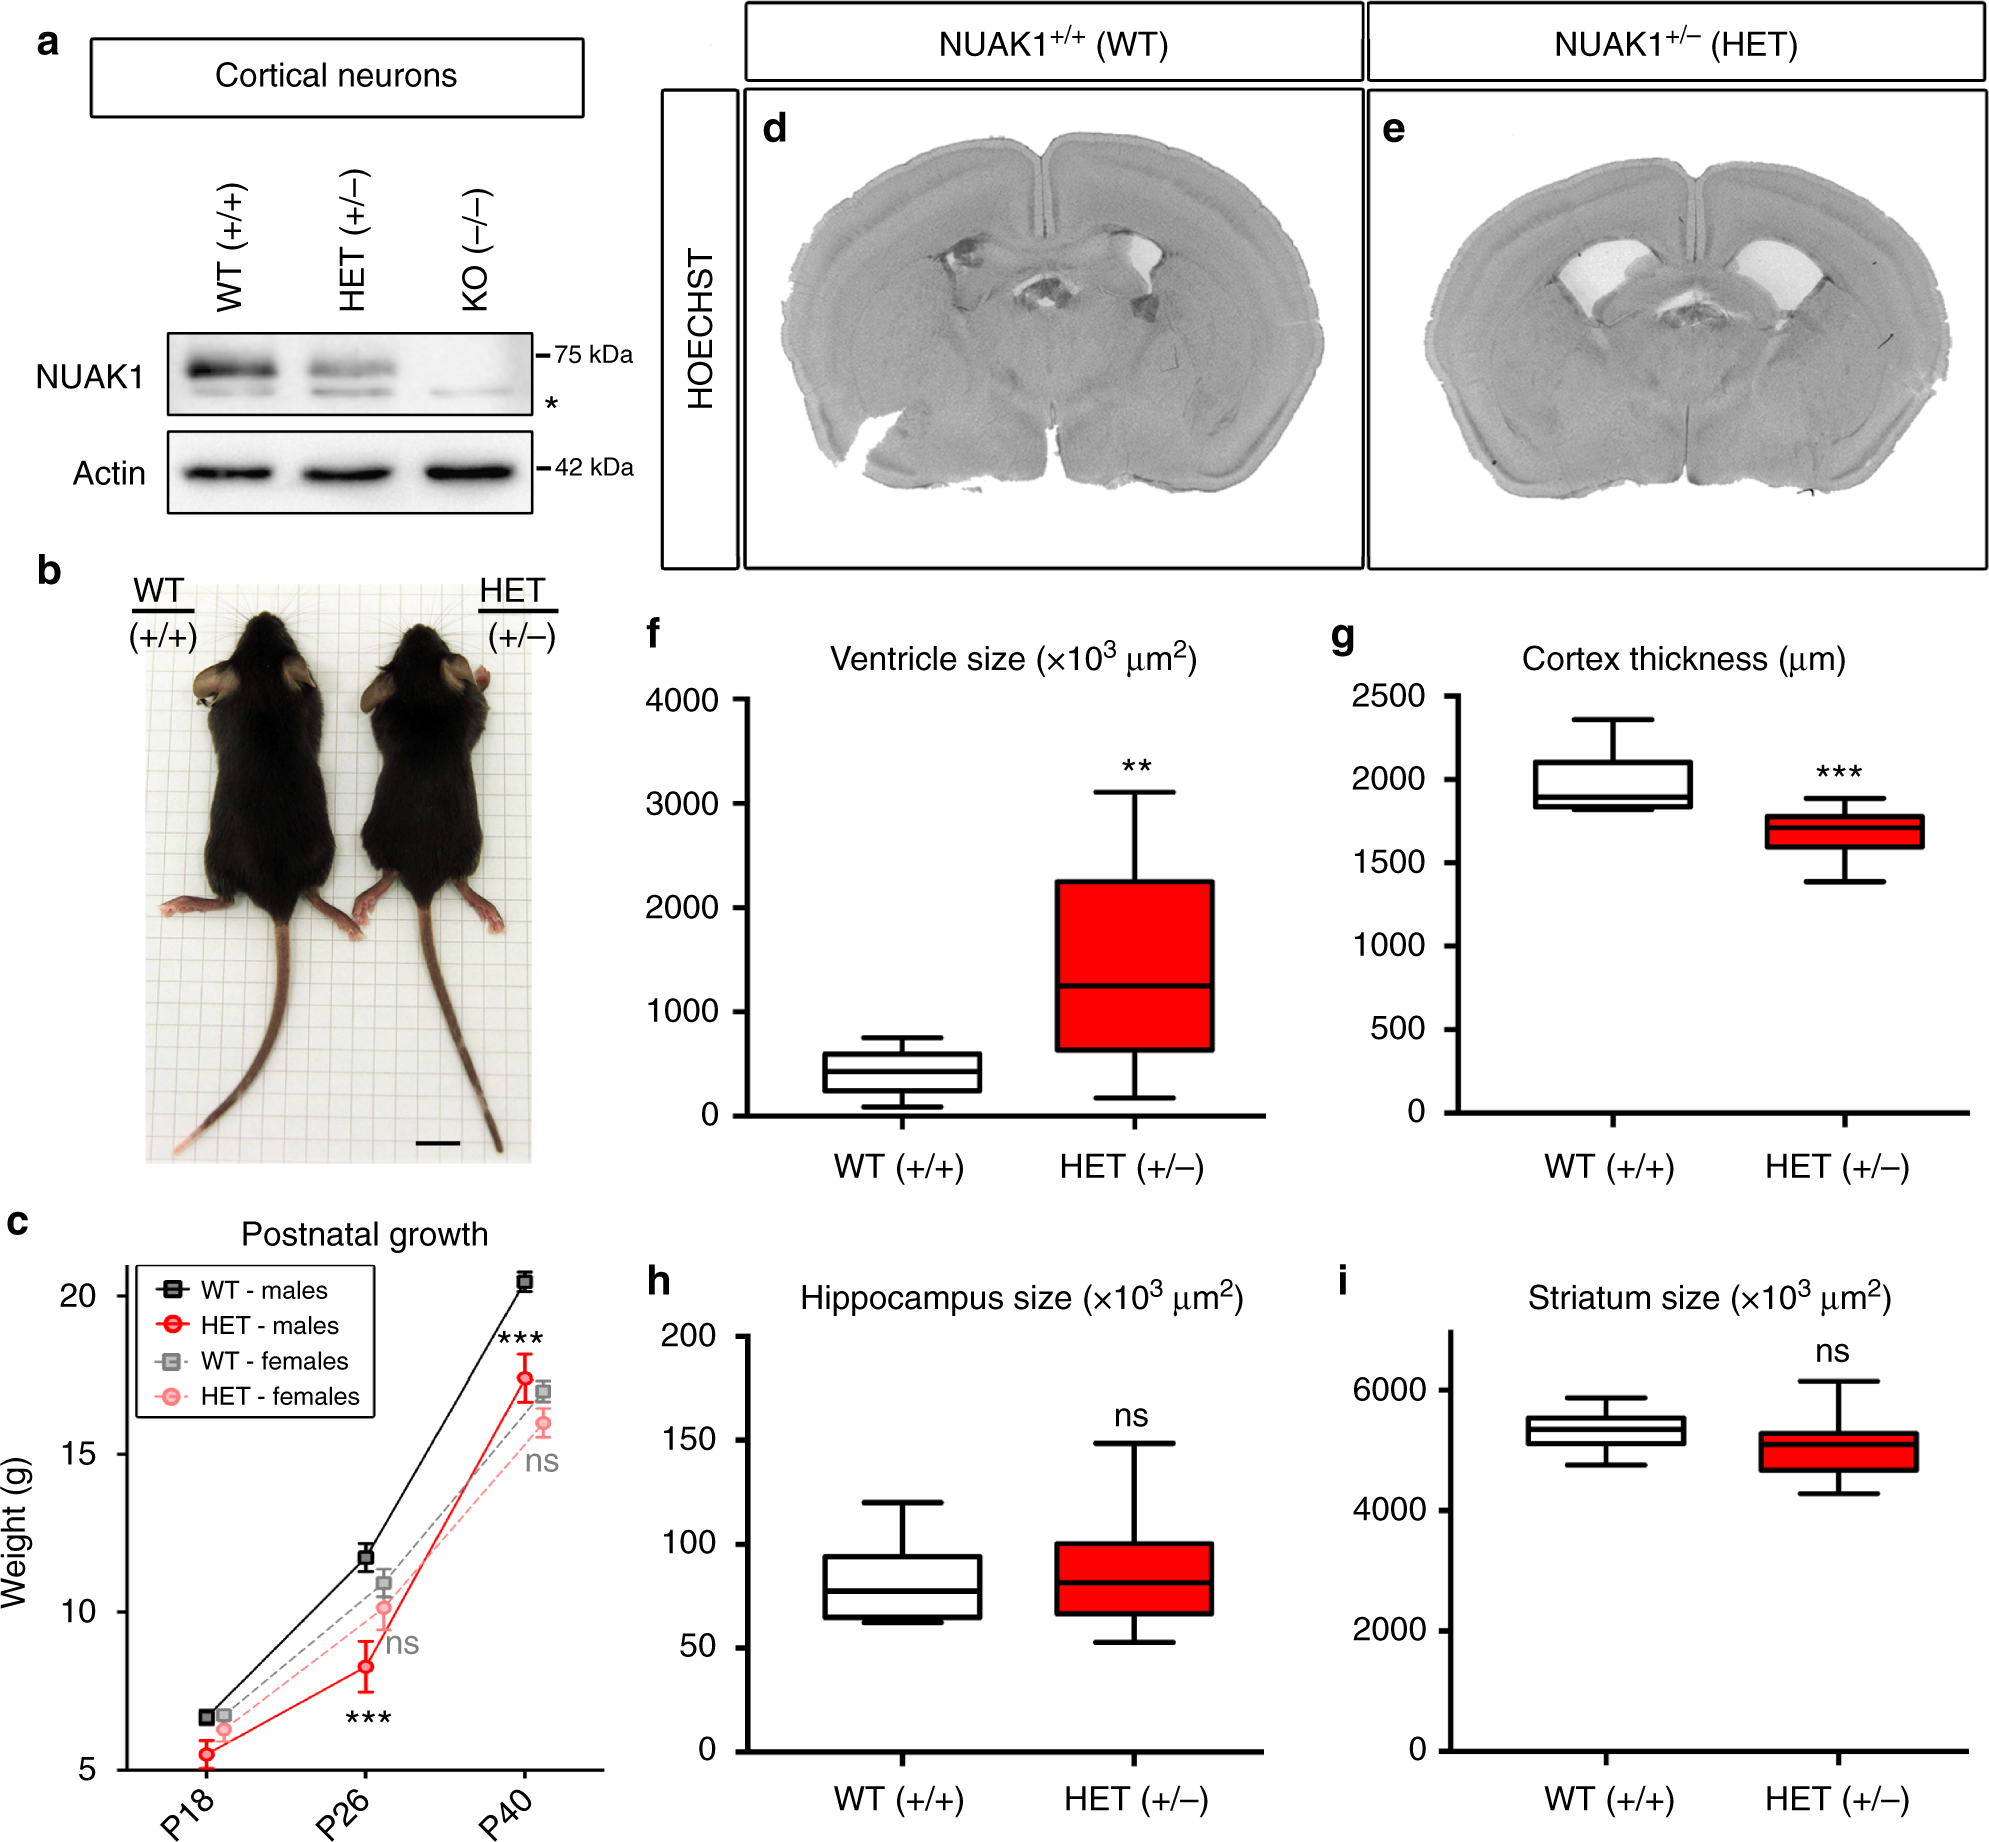 Haploinsufficiency Of Autism Spectrum Disorder Candidate Gene Nuak1 Simple Low Battery Indicator Circuit As Well Tube Tone Control Impairs Cortical Development And Behavior In Mice Nature Communications